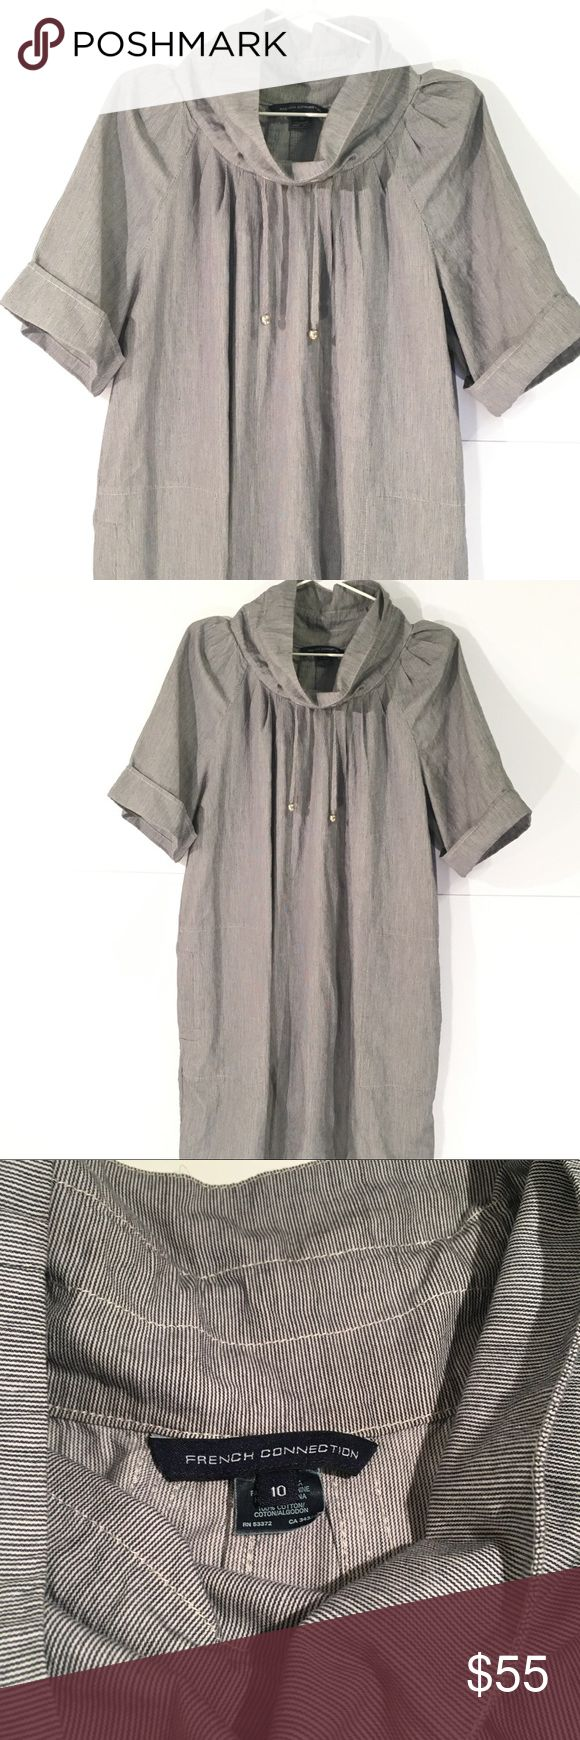 French Connection Striped Casual Dress Size 10. Funnel neck dress with pockets. Very small blue and white stripes that makes the dress looks gray. On trend and perfect for fall! French Connection Dresses